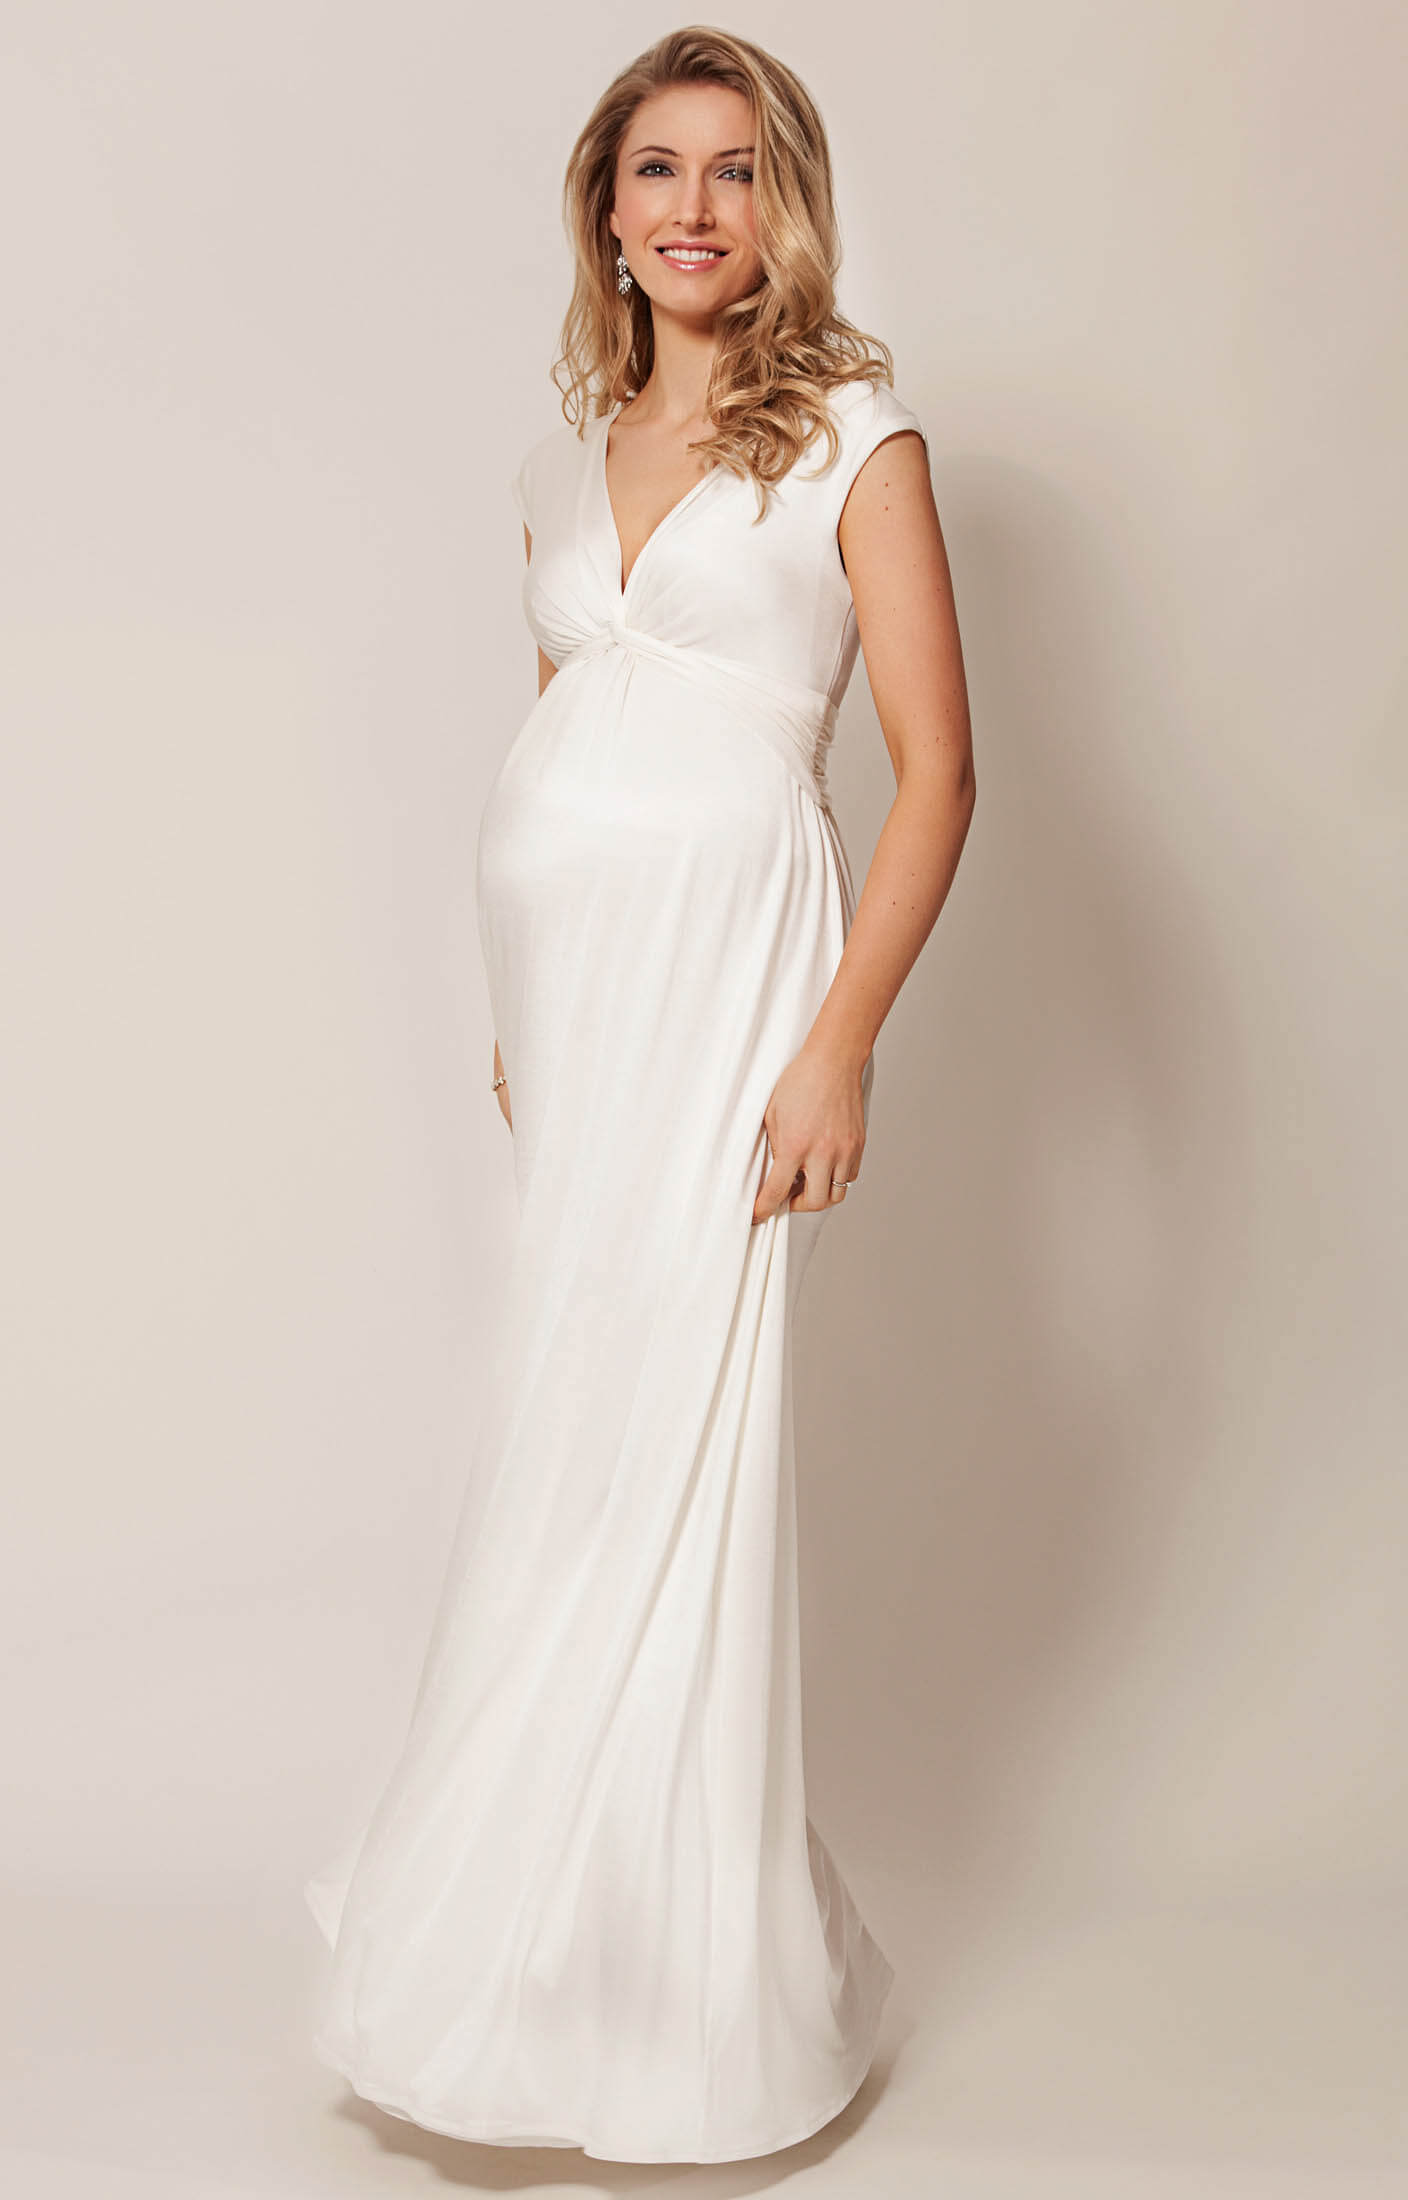 Clara maternity wedding gown long ivory maternity for Pregnancy dress for wedding